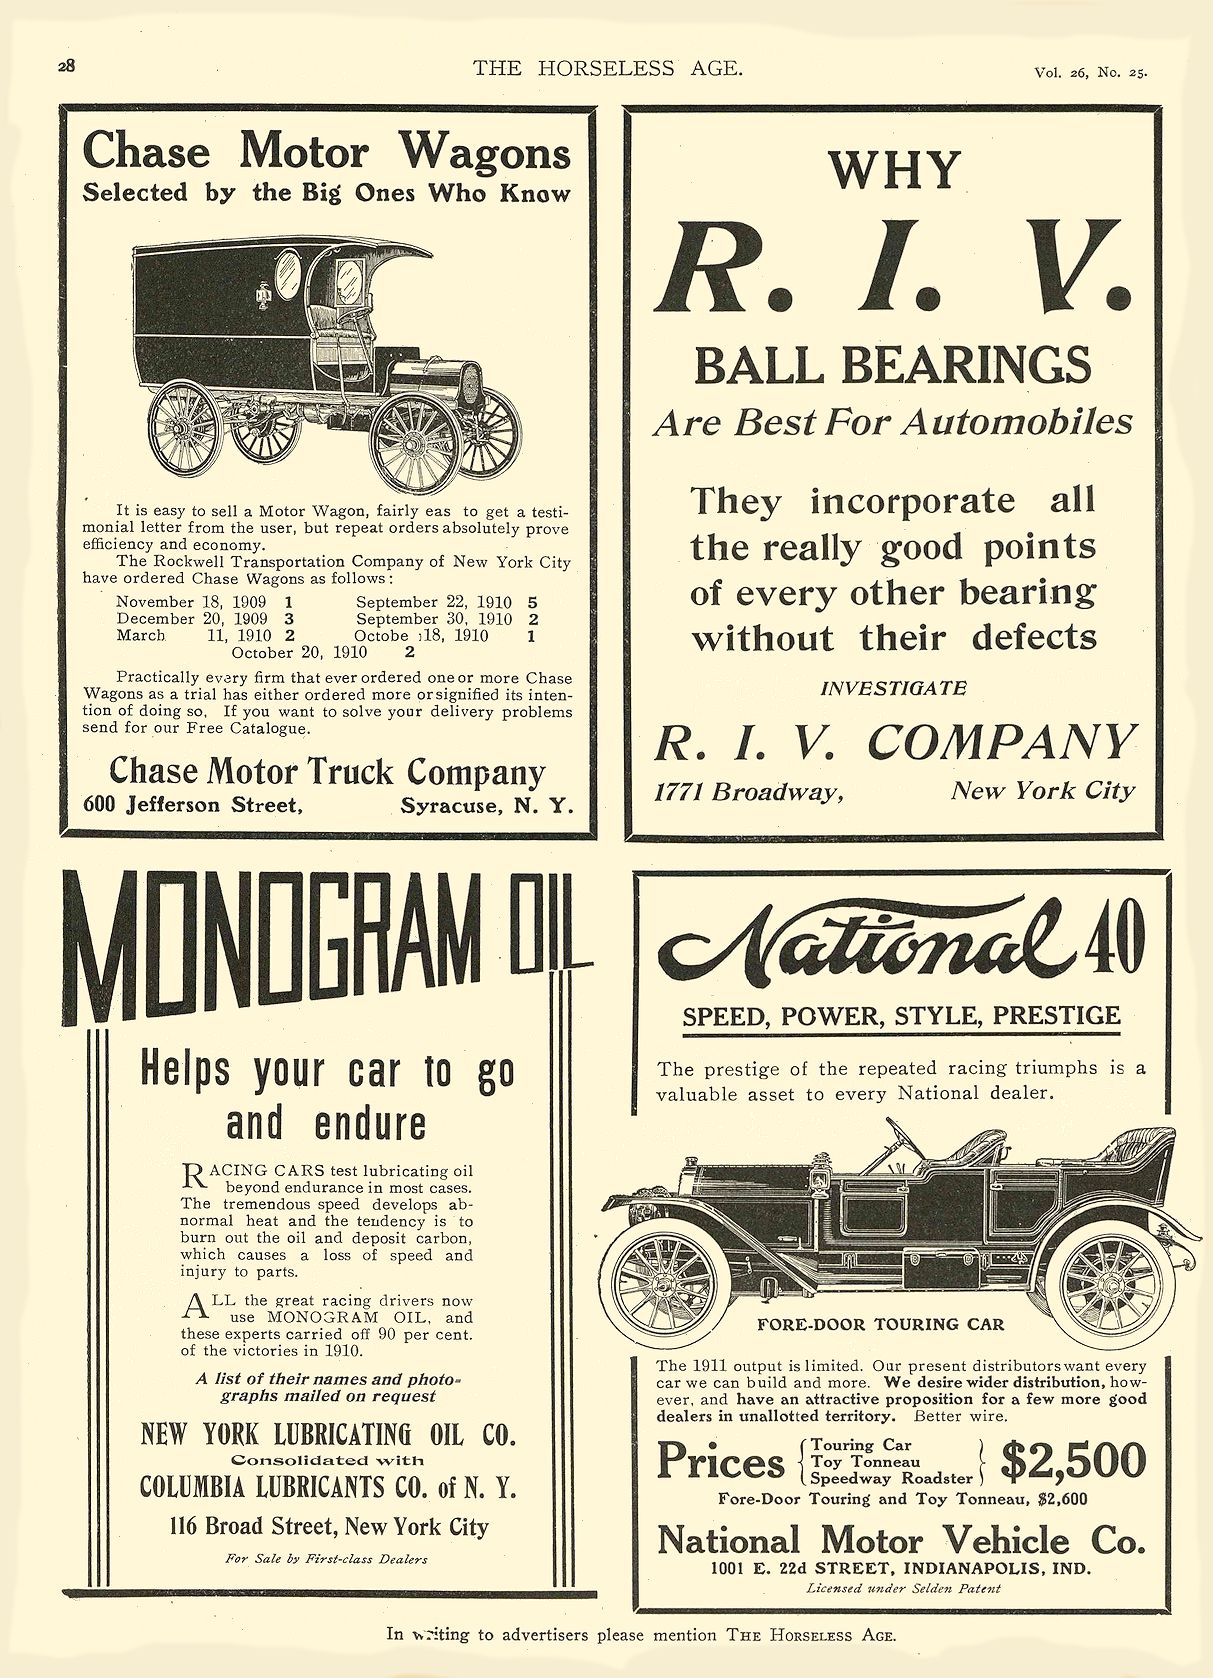 1911 12 21 NATIONAL National 40 SPEED, POWER, STYLE, PRESTIGE National Motor Vehicle Co. Indianapolis, IND THE HORSELESS AGE December 21, 1910 8.25″x11.75″ page 28